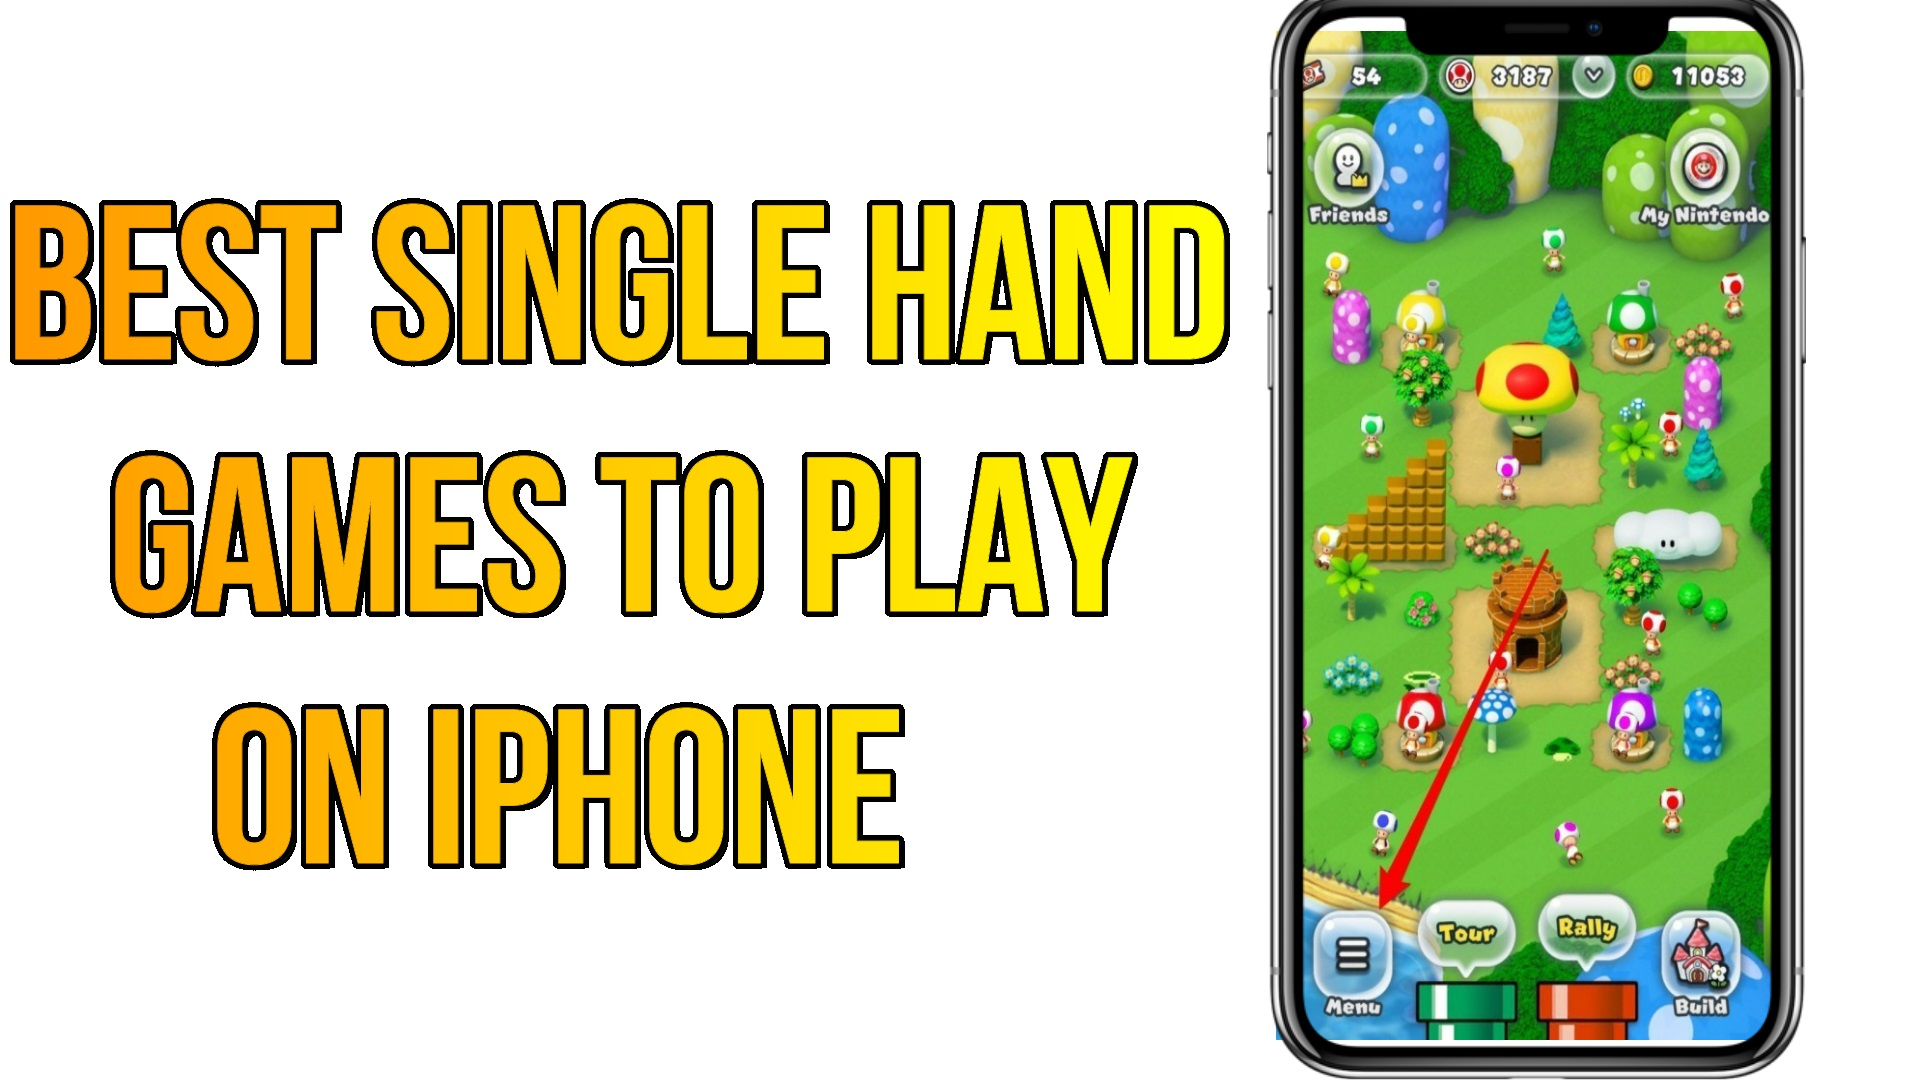 Best Single Hand Games to Play on iOS iPhone